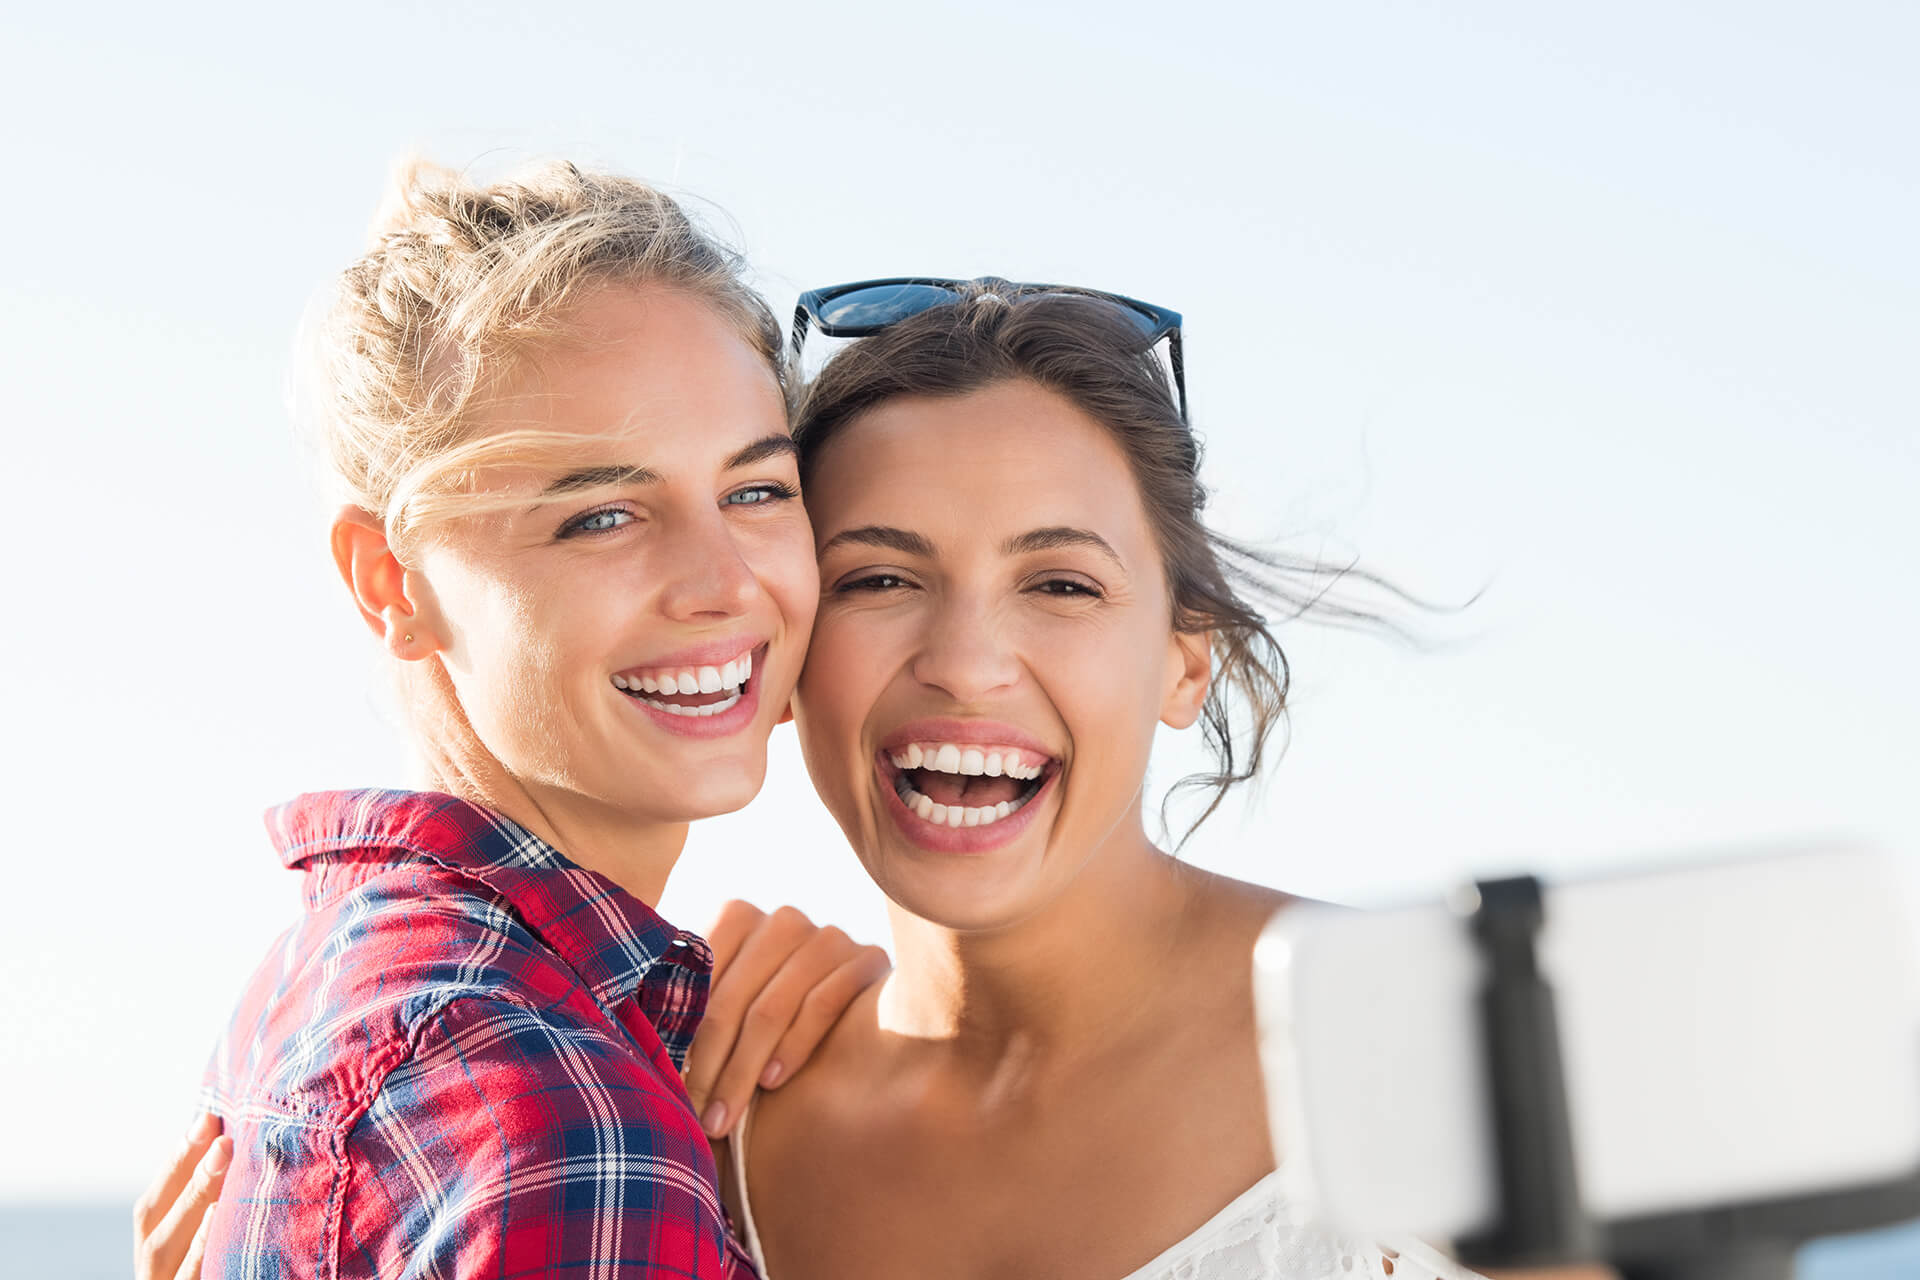 Make Your Smile Selfie-Ready this Summer